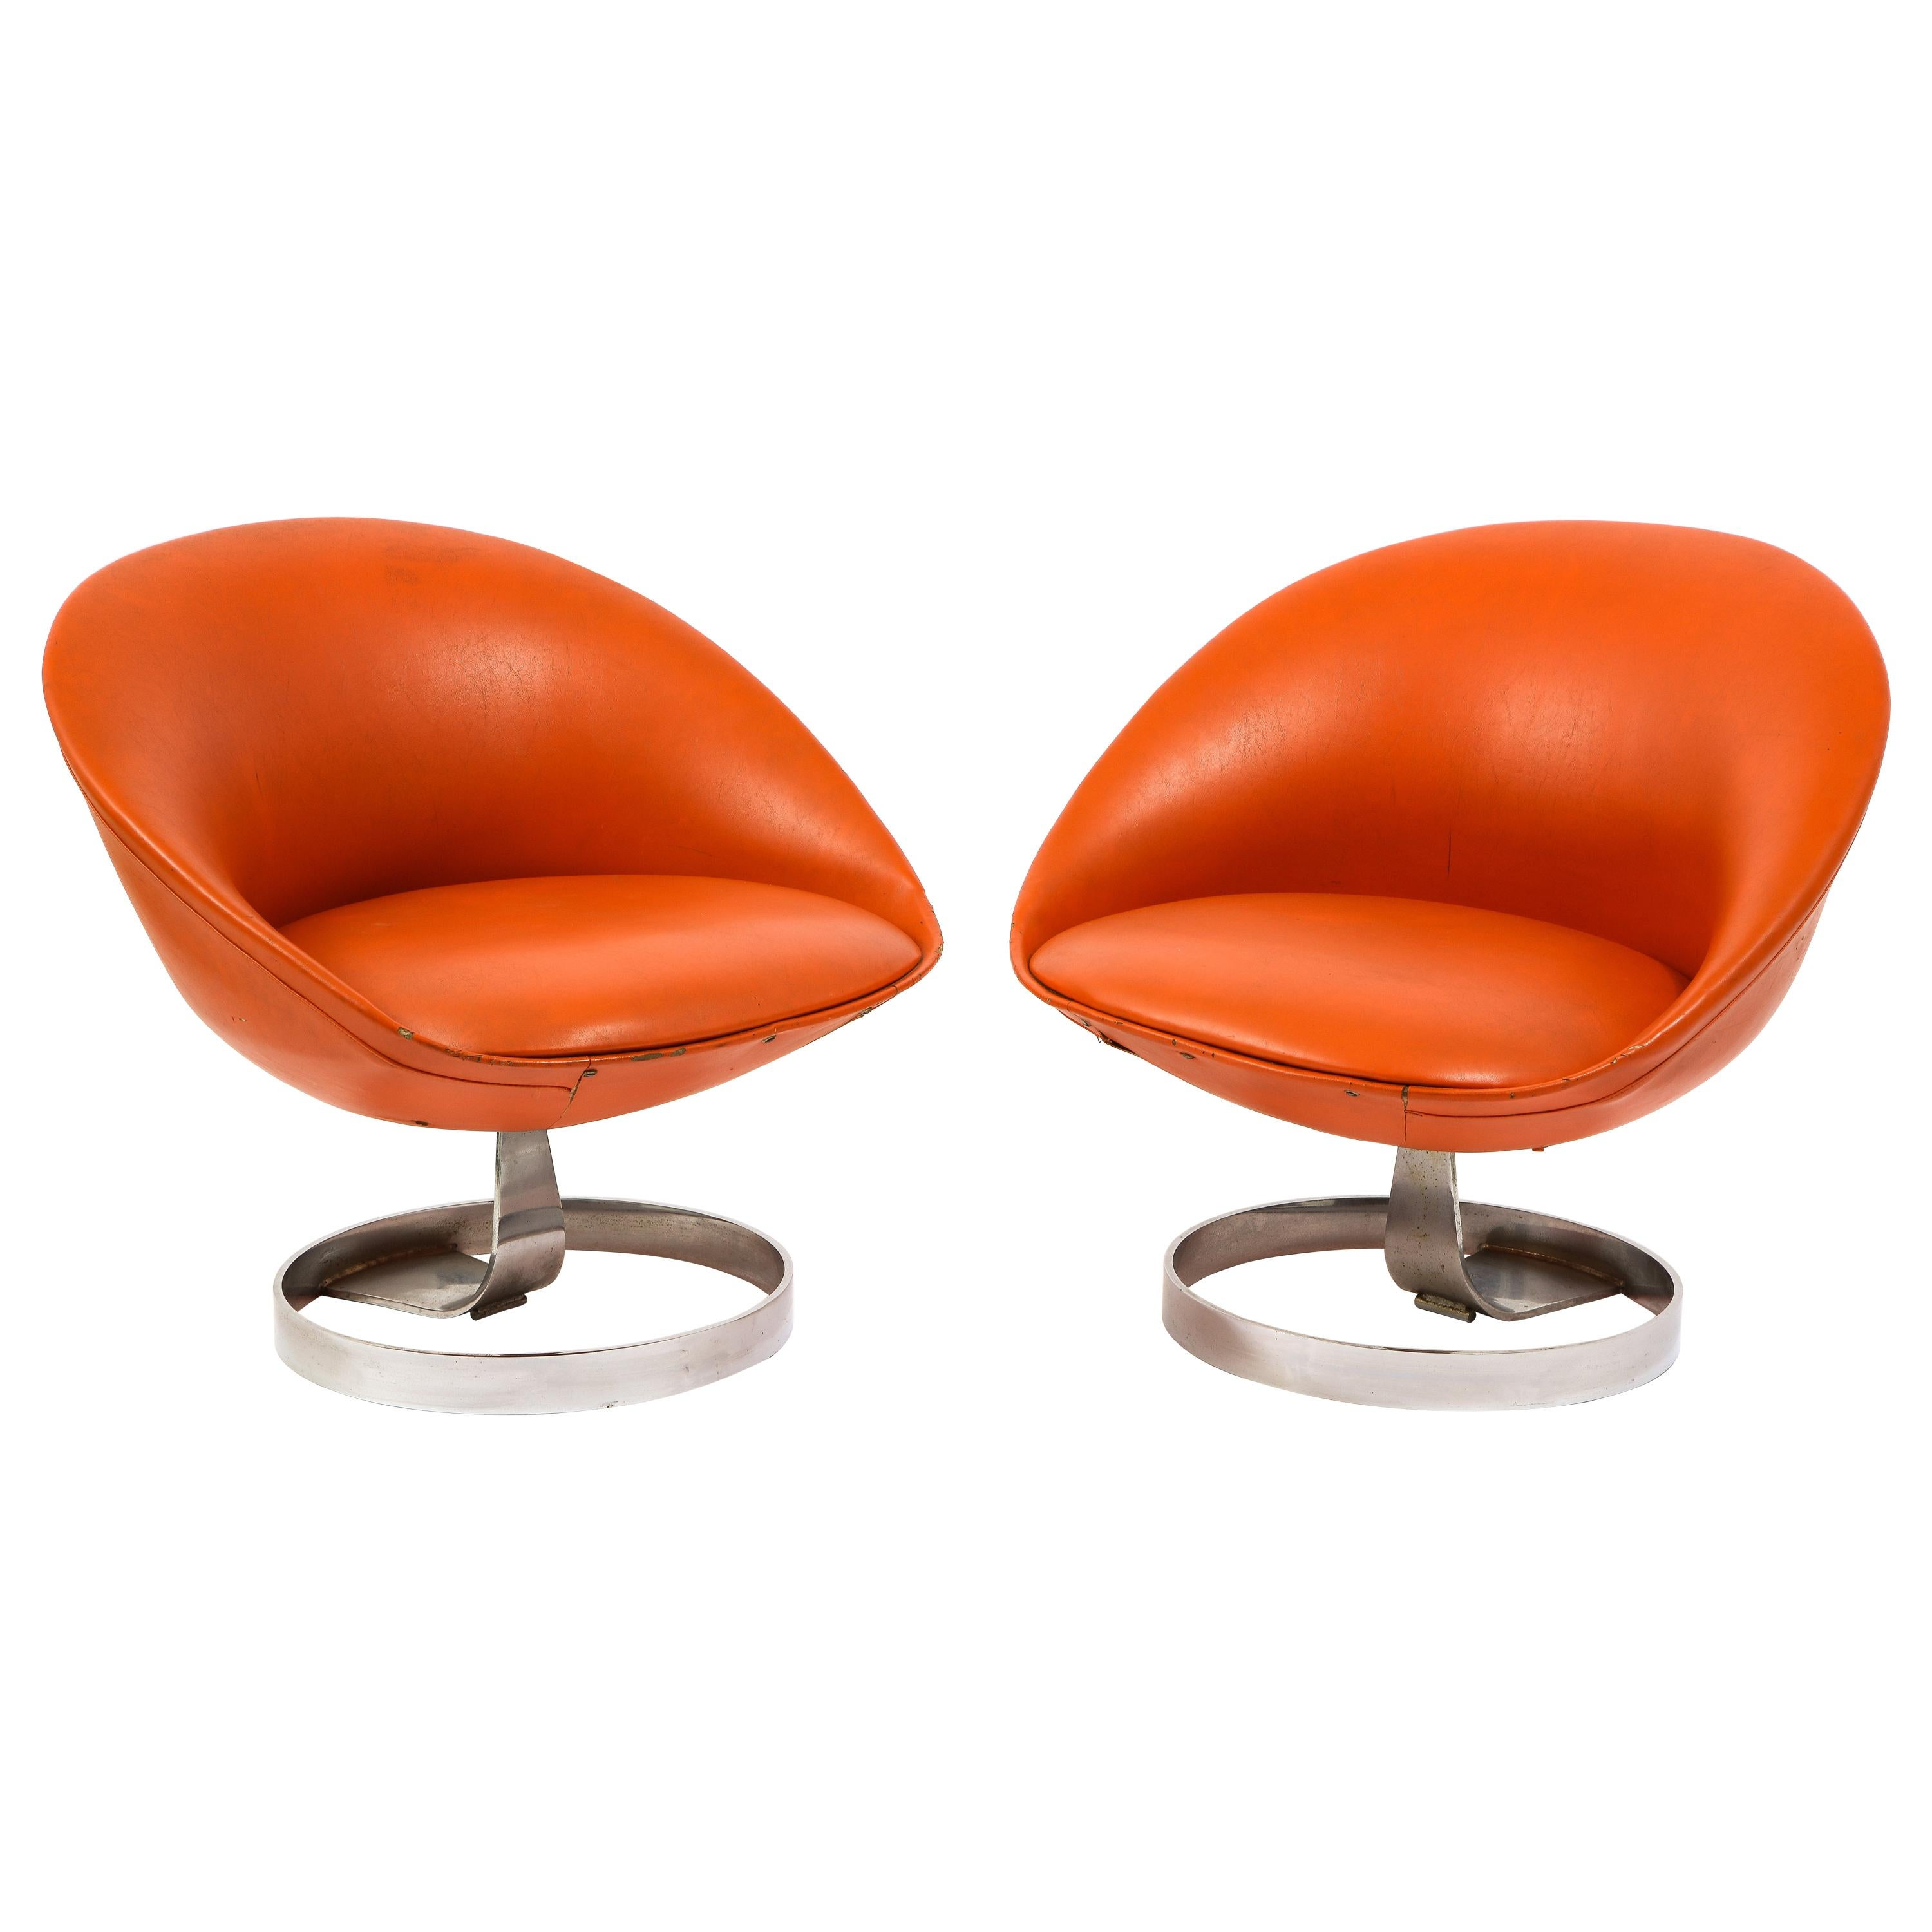 Pair of Space Age Maurice Calka K1 Lounge Chairs, France, 1970's